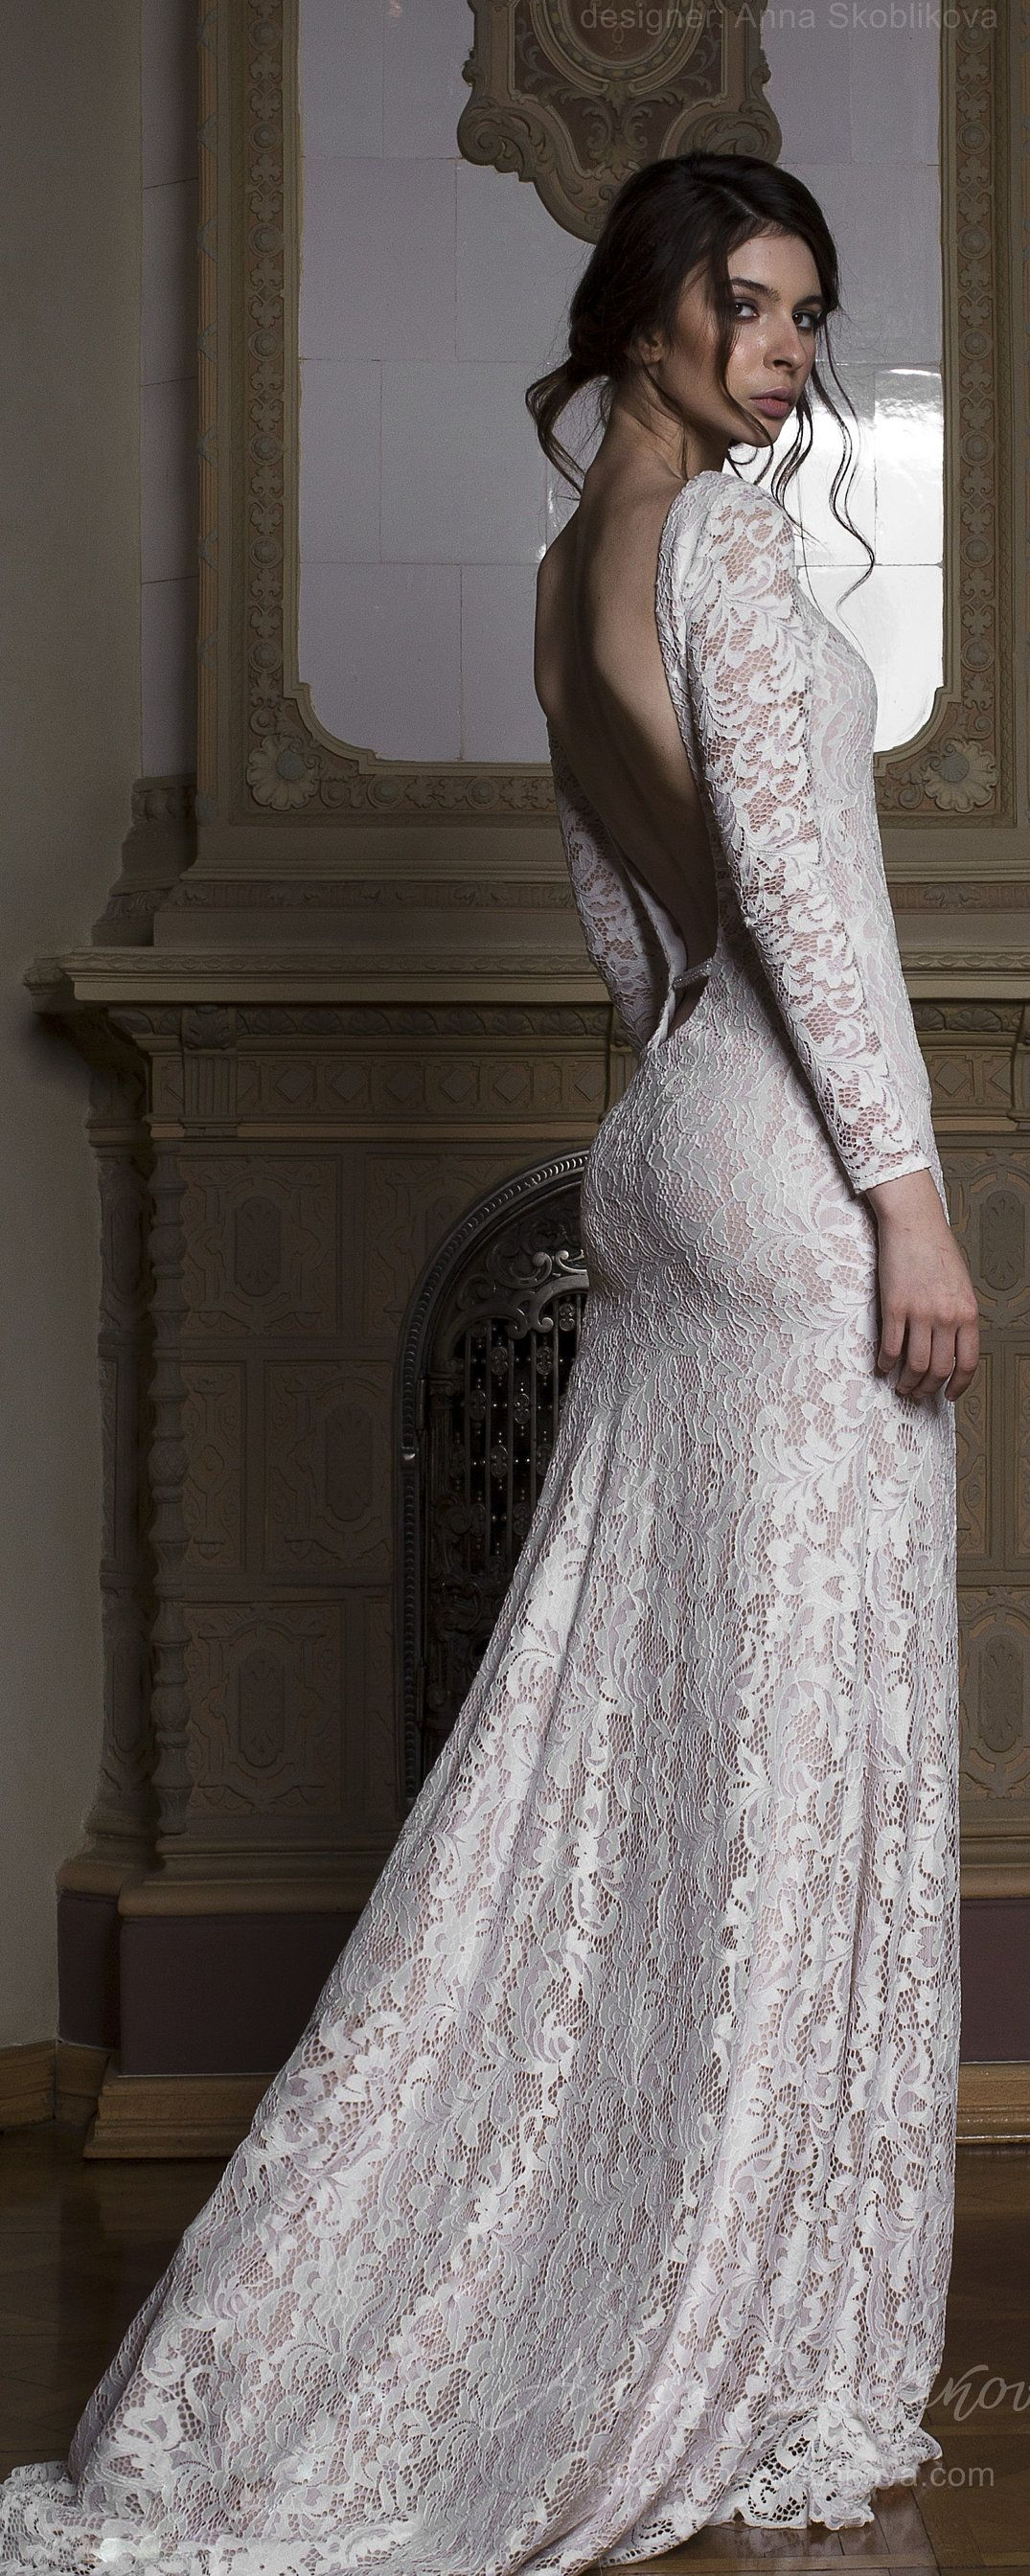 Long sleeve lace wedding dress lace wedding dress backless wedding